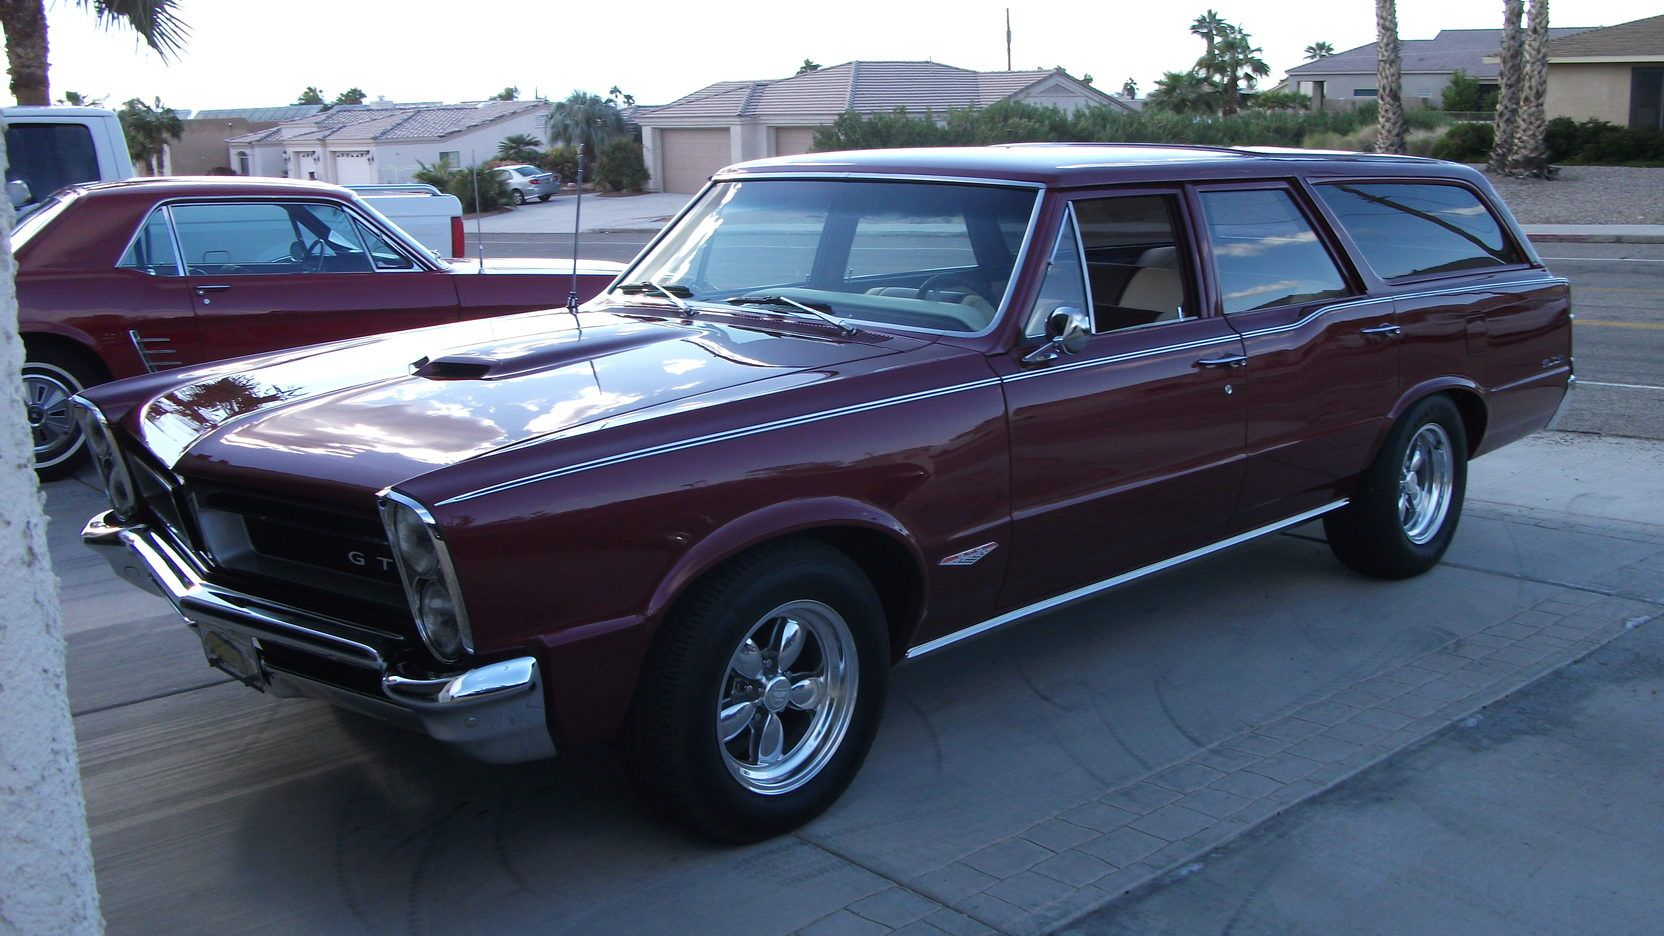 1965 Pontiac Custom Station Wagon presented as Lot T143 at